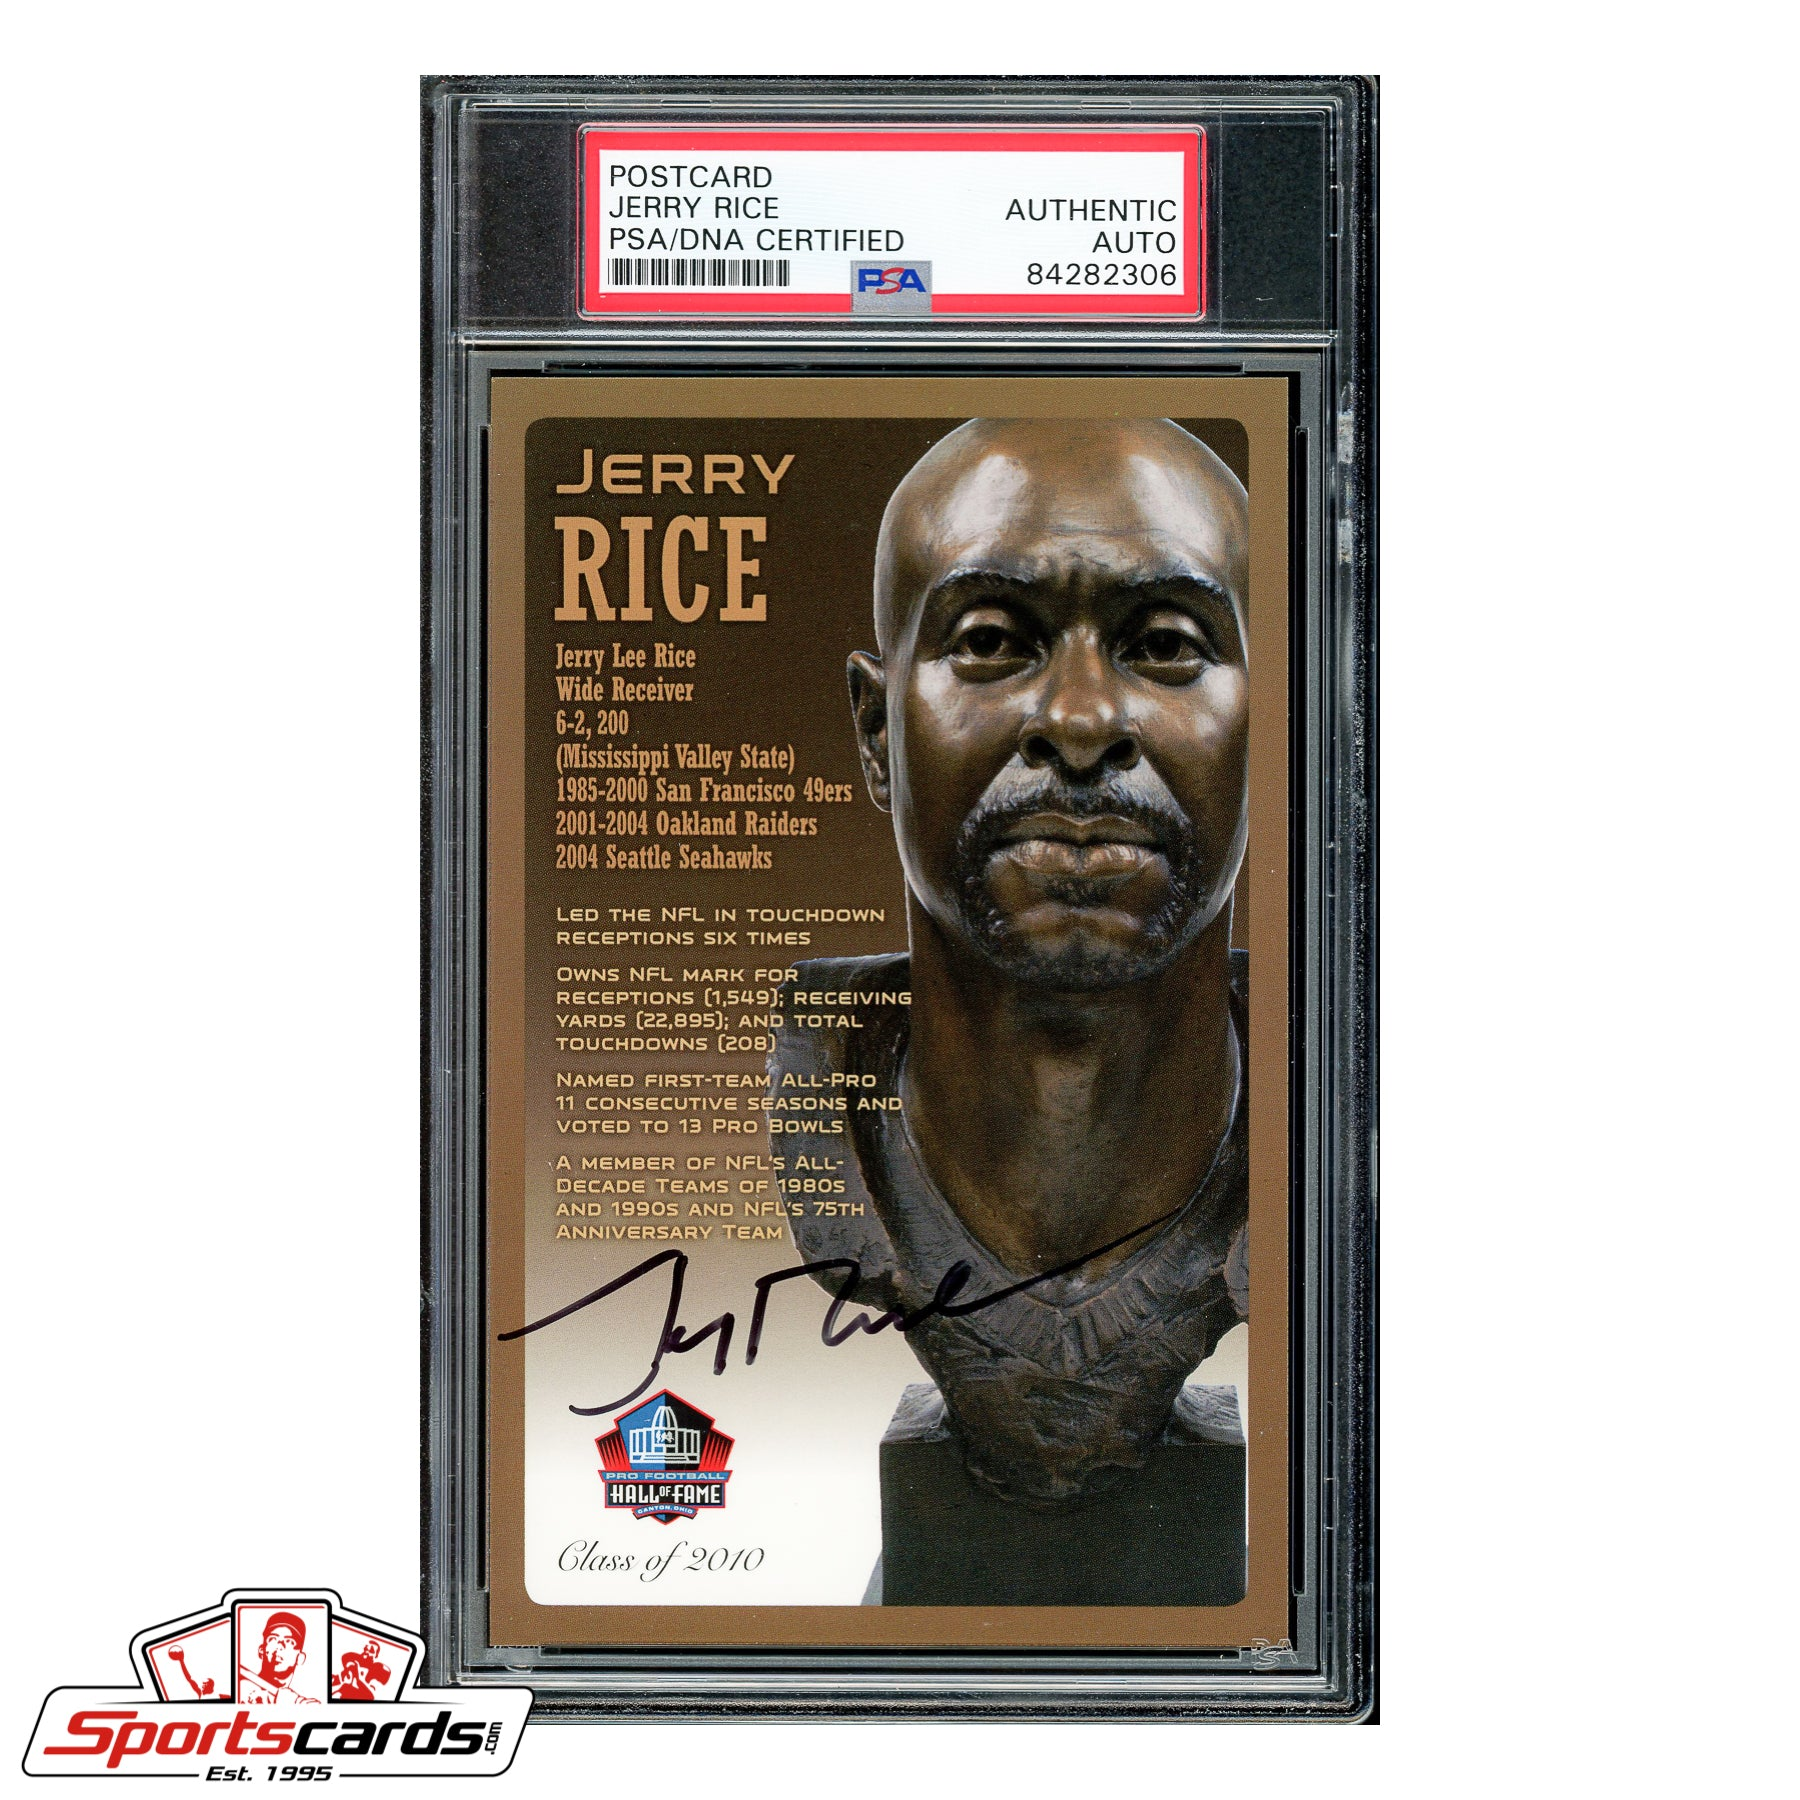 Jerry Rice Signed Auto HOF Bronze Bust Postcard - PSA/DNA